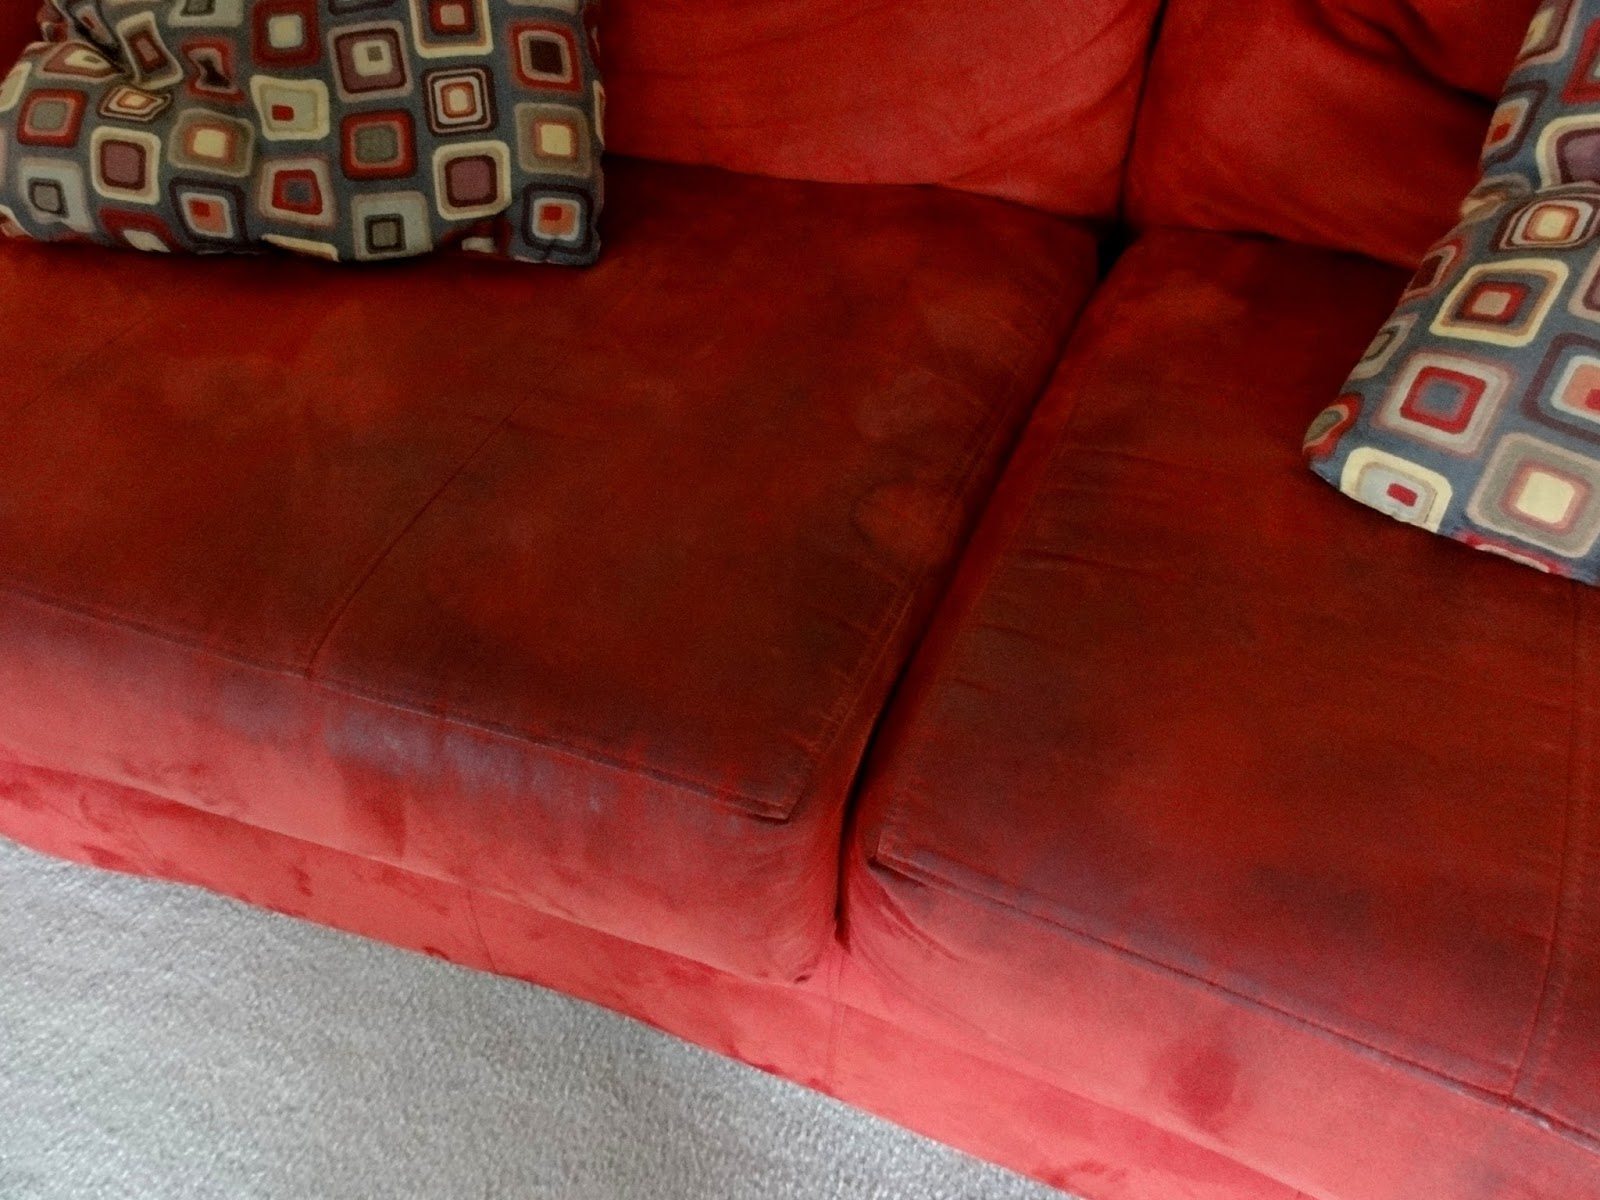 my red couch with stains from hell